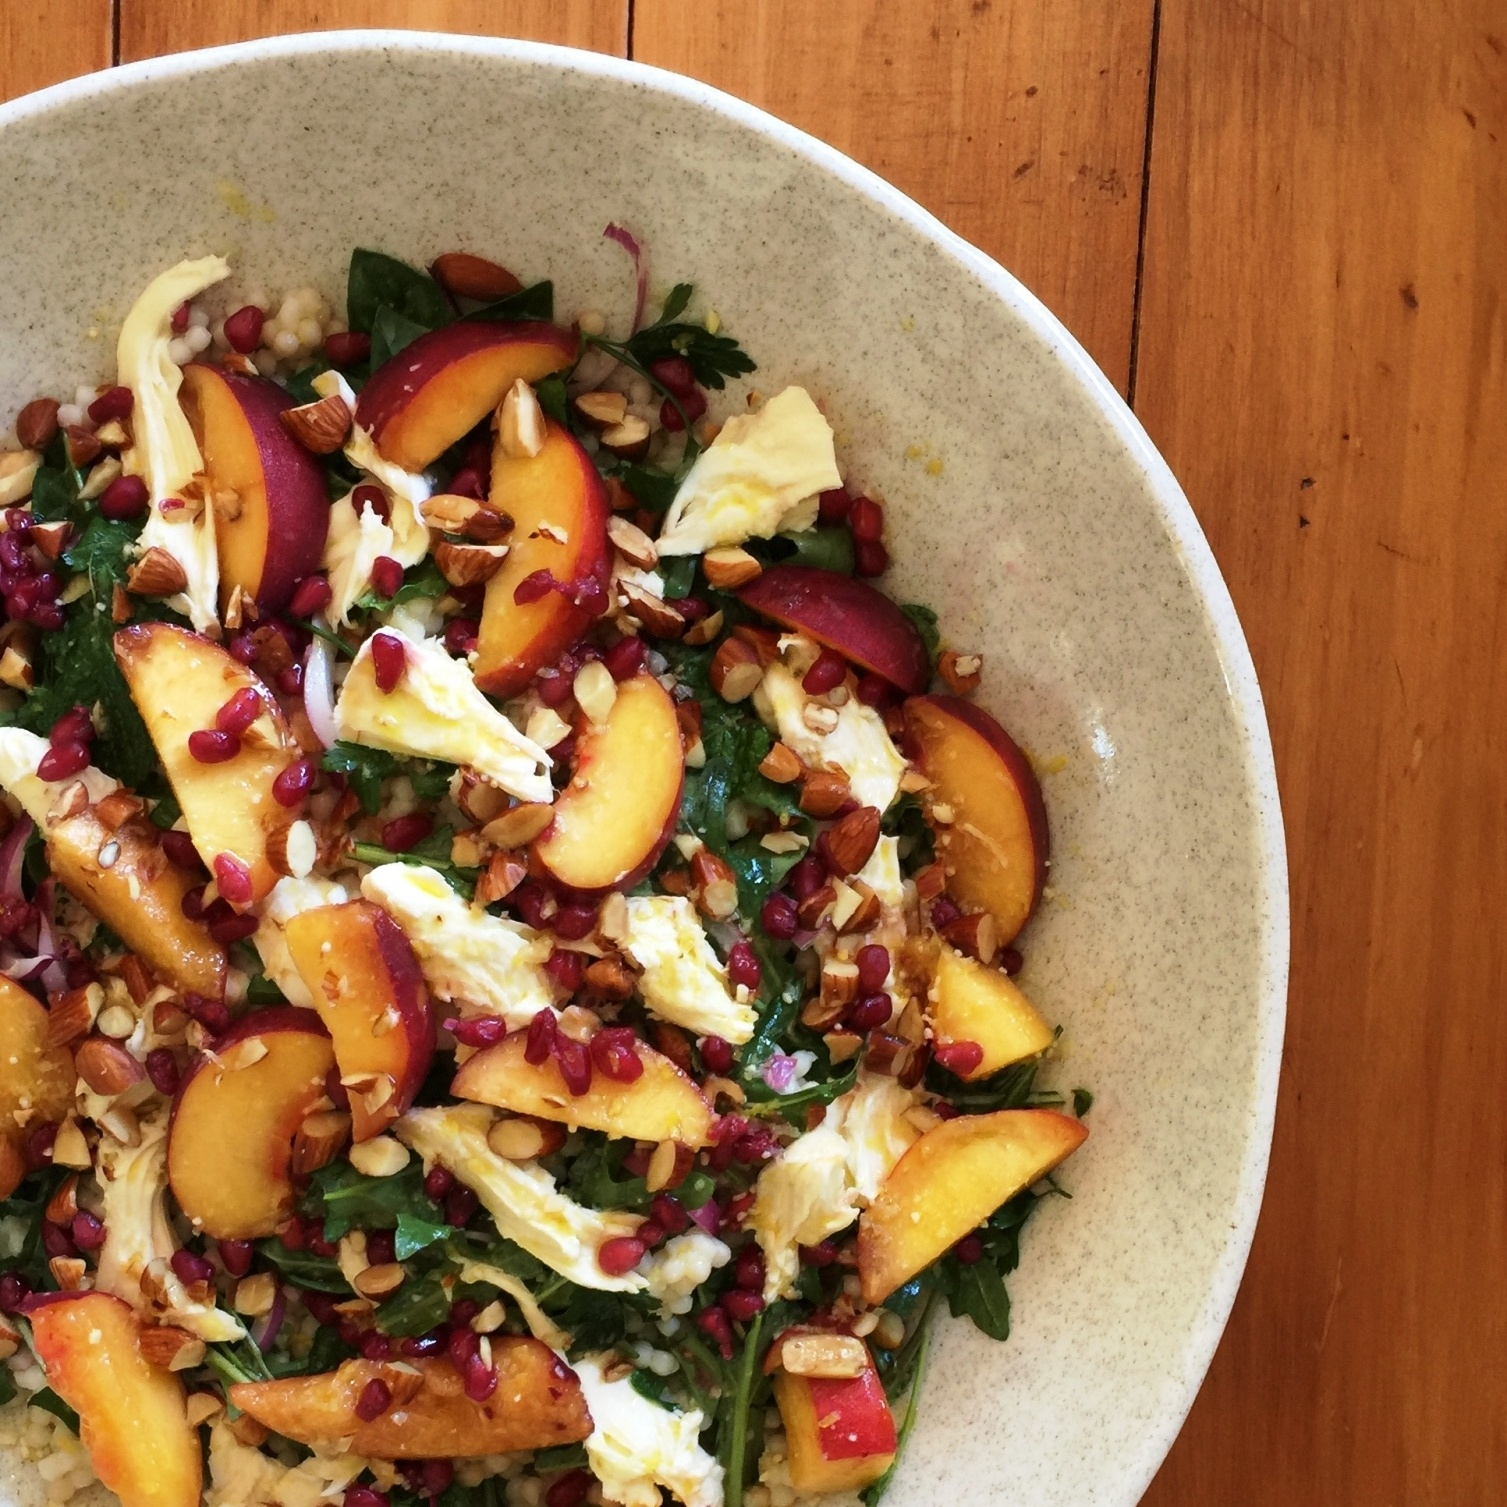 Peach mozzarella and Israeli couscous salad